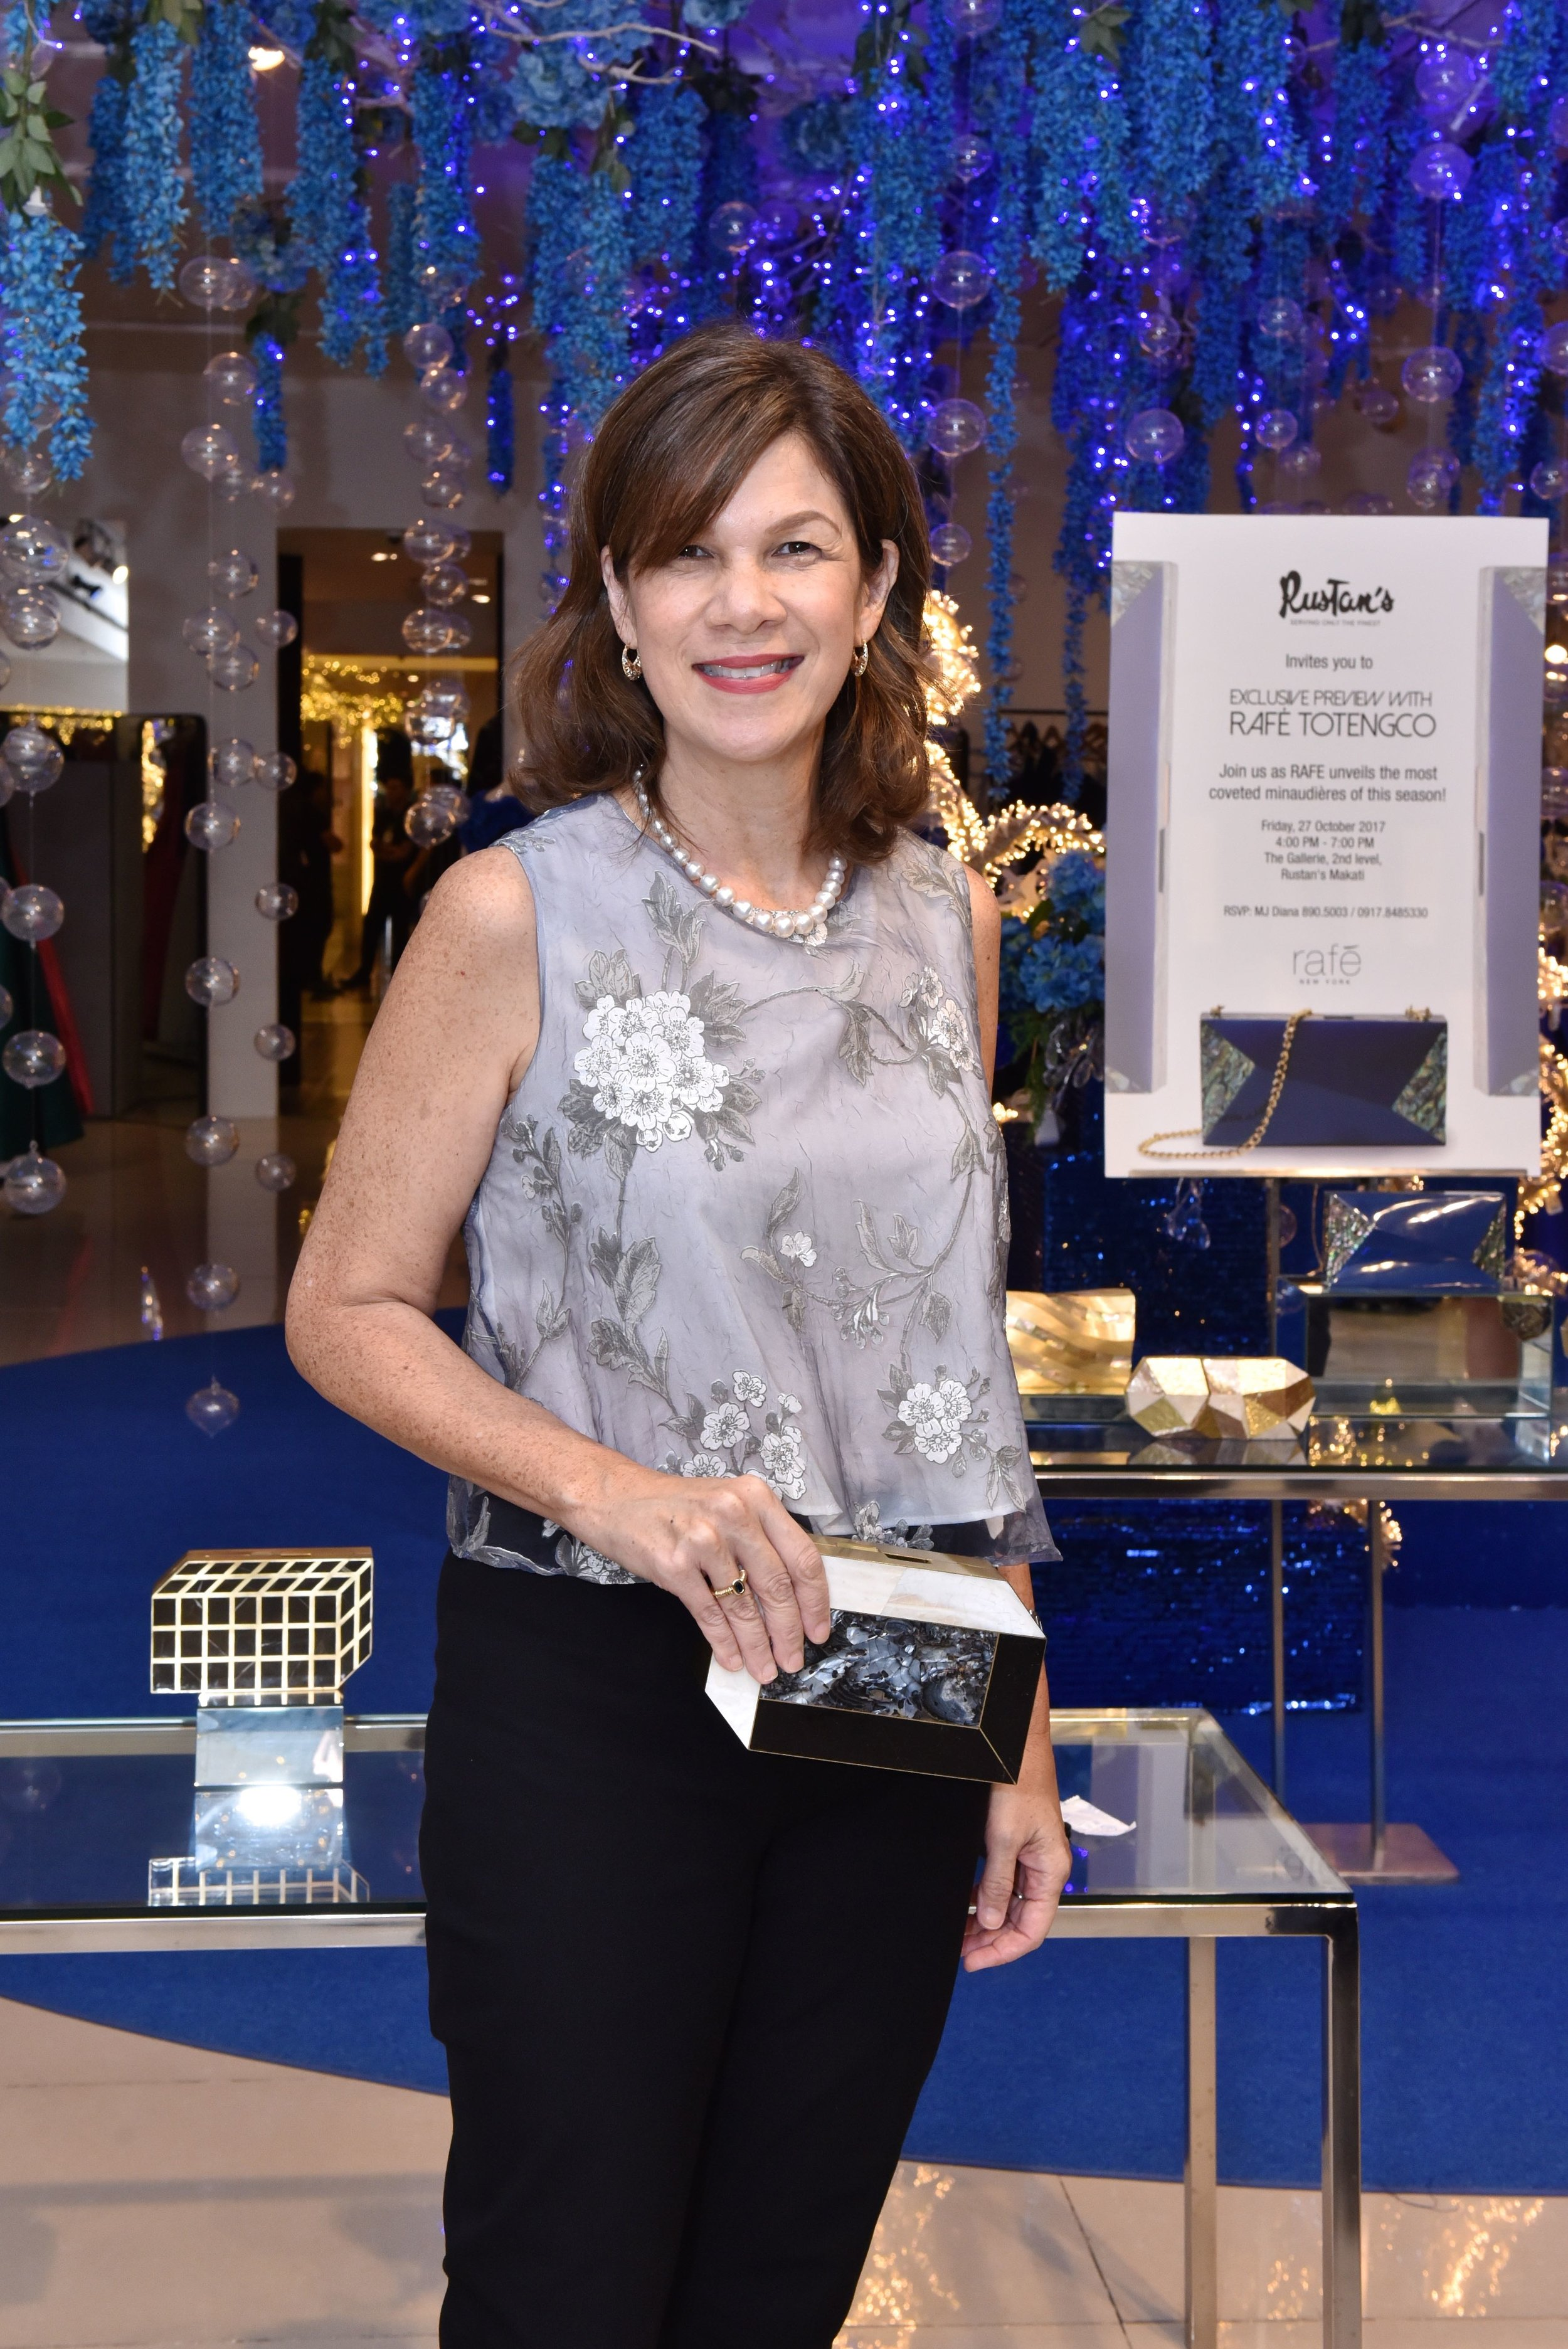 Cathryn Salud clutching the Pia Minaudière.